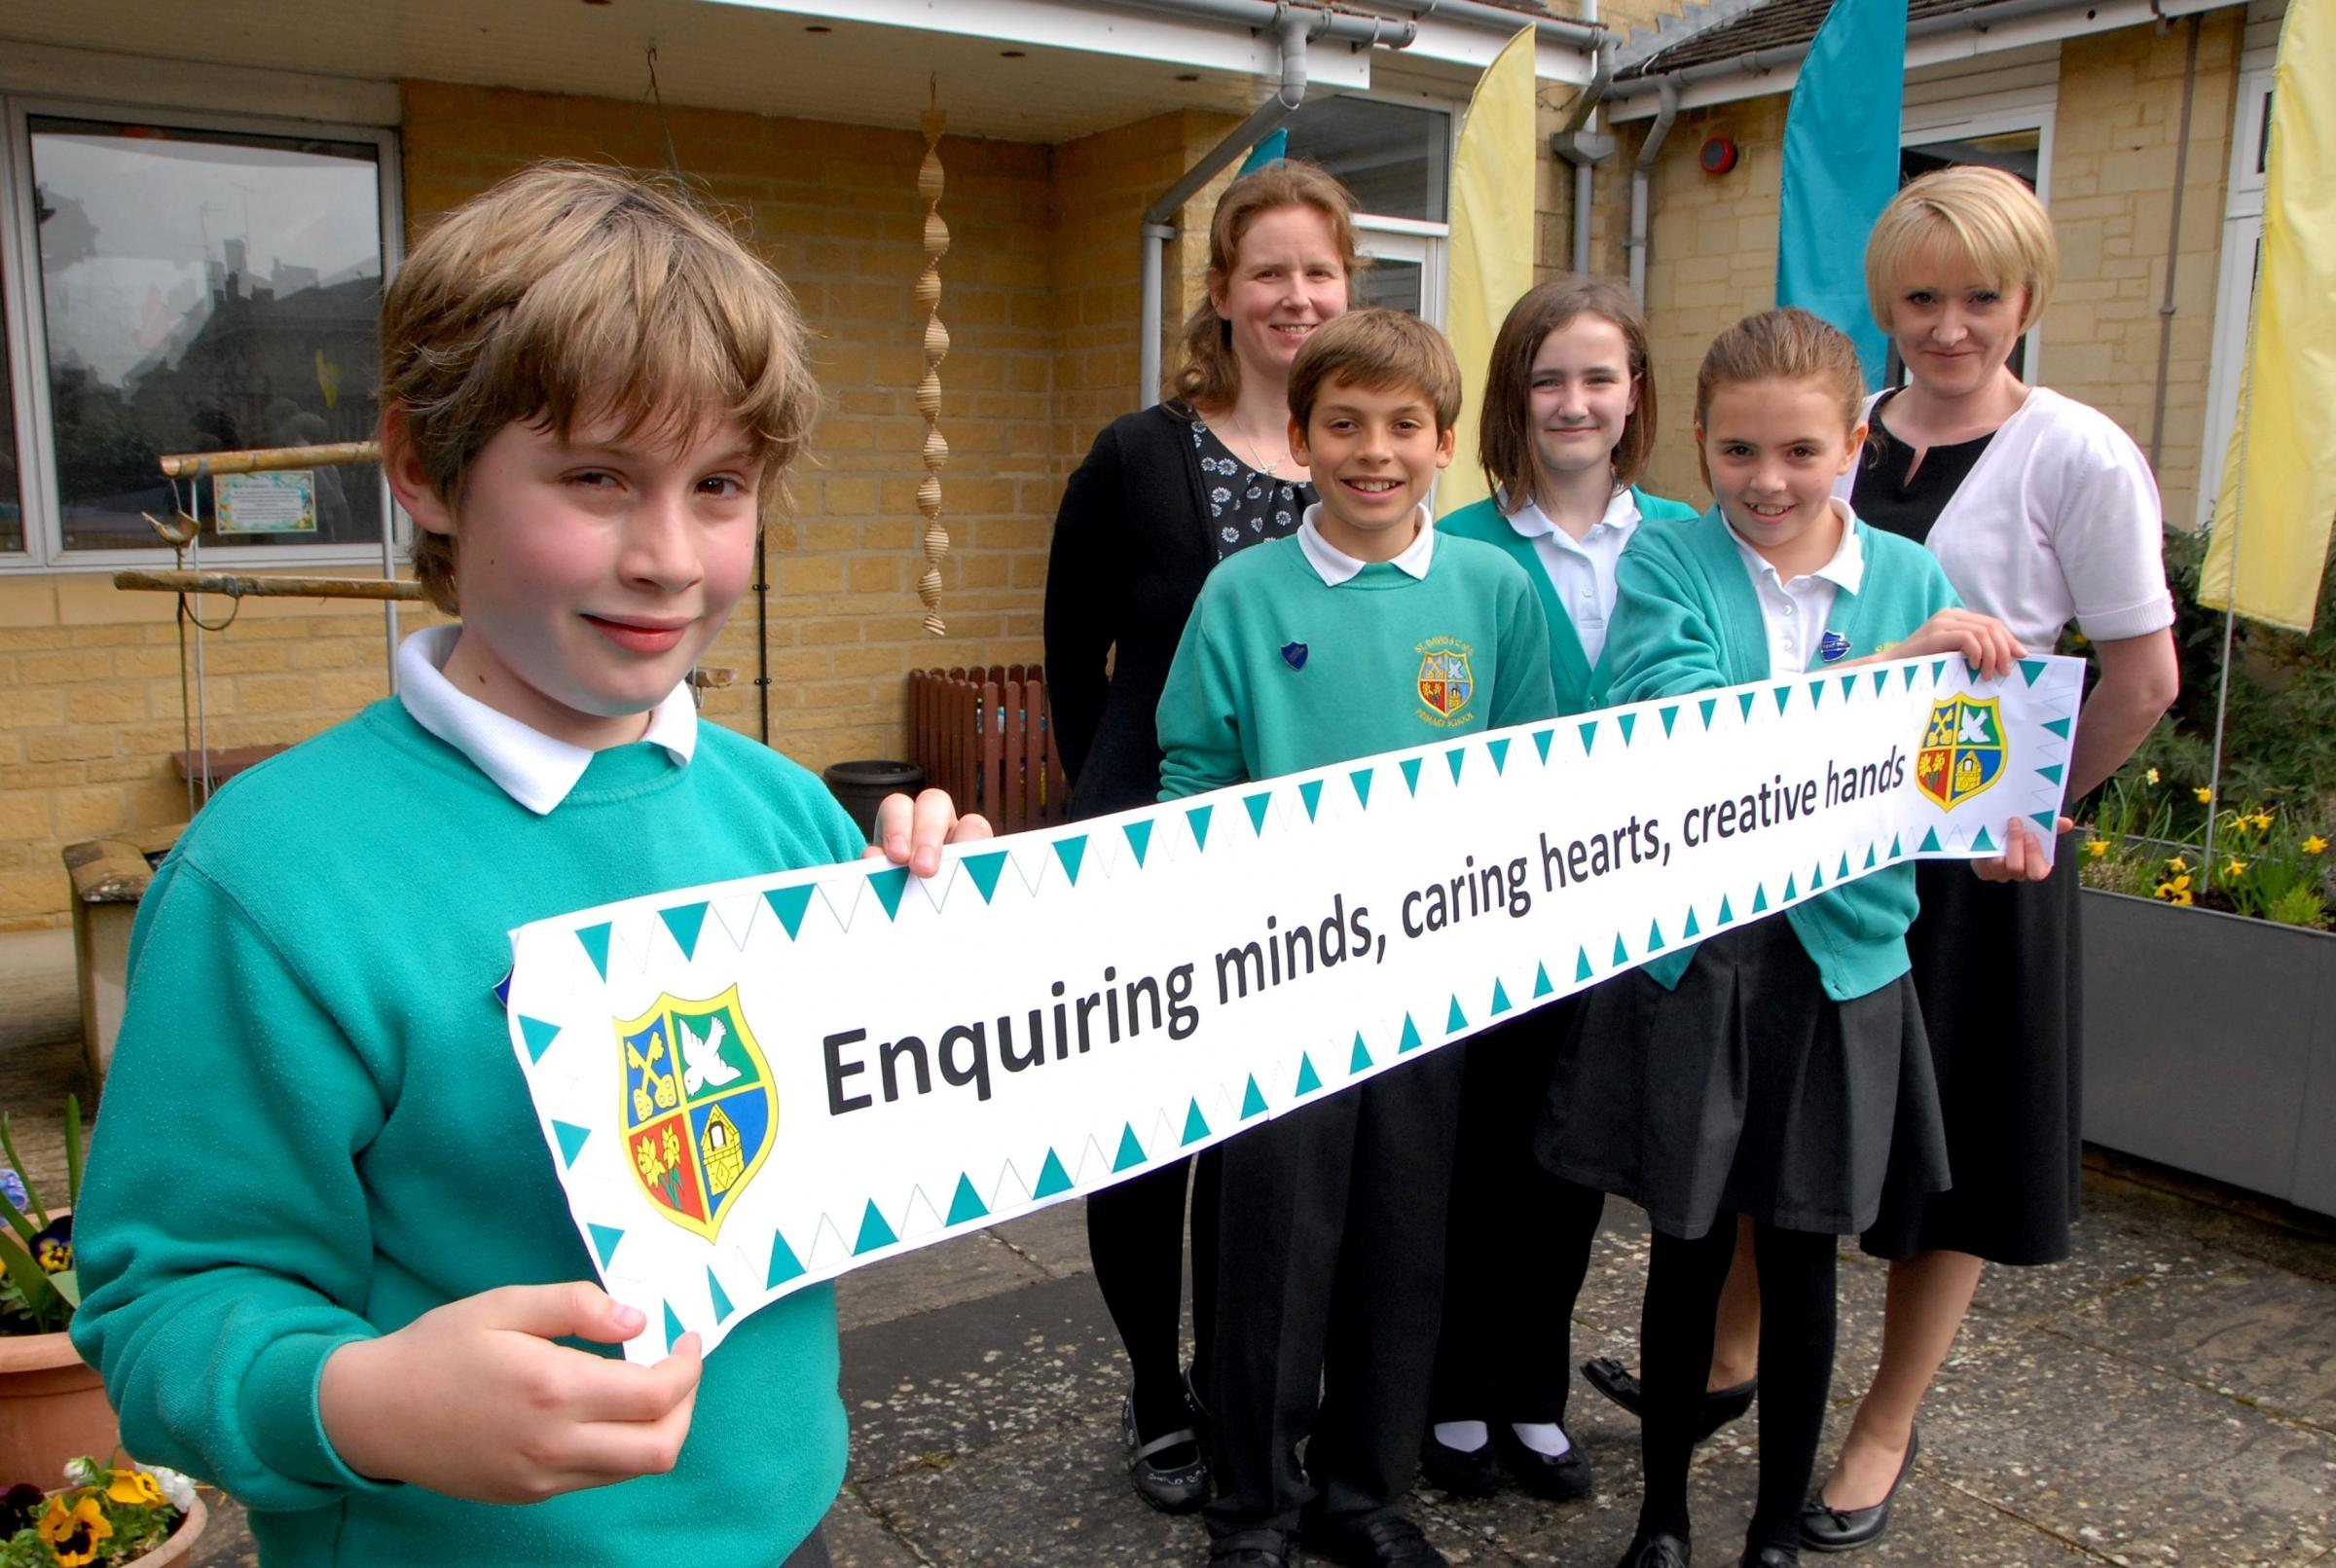 1414561901 Paul Jackson 01.04.14 Moreton-in-Marsh St David's C of E Primary School have a new school motto, Enquiring minds, Caring hearts, creative hands. From left - Dylan Yeomans, ten, Karen Harding, Alfie Townley, 11, Libby Payne, 11,Martha Robbin